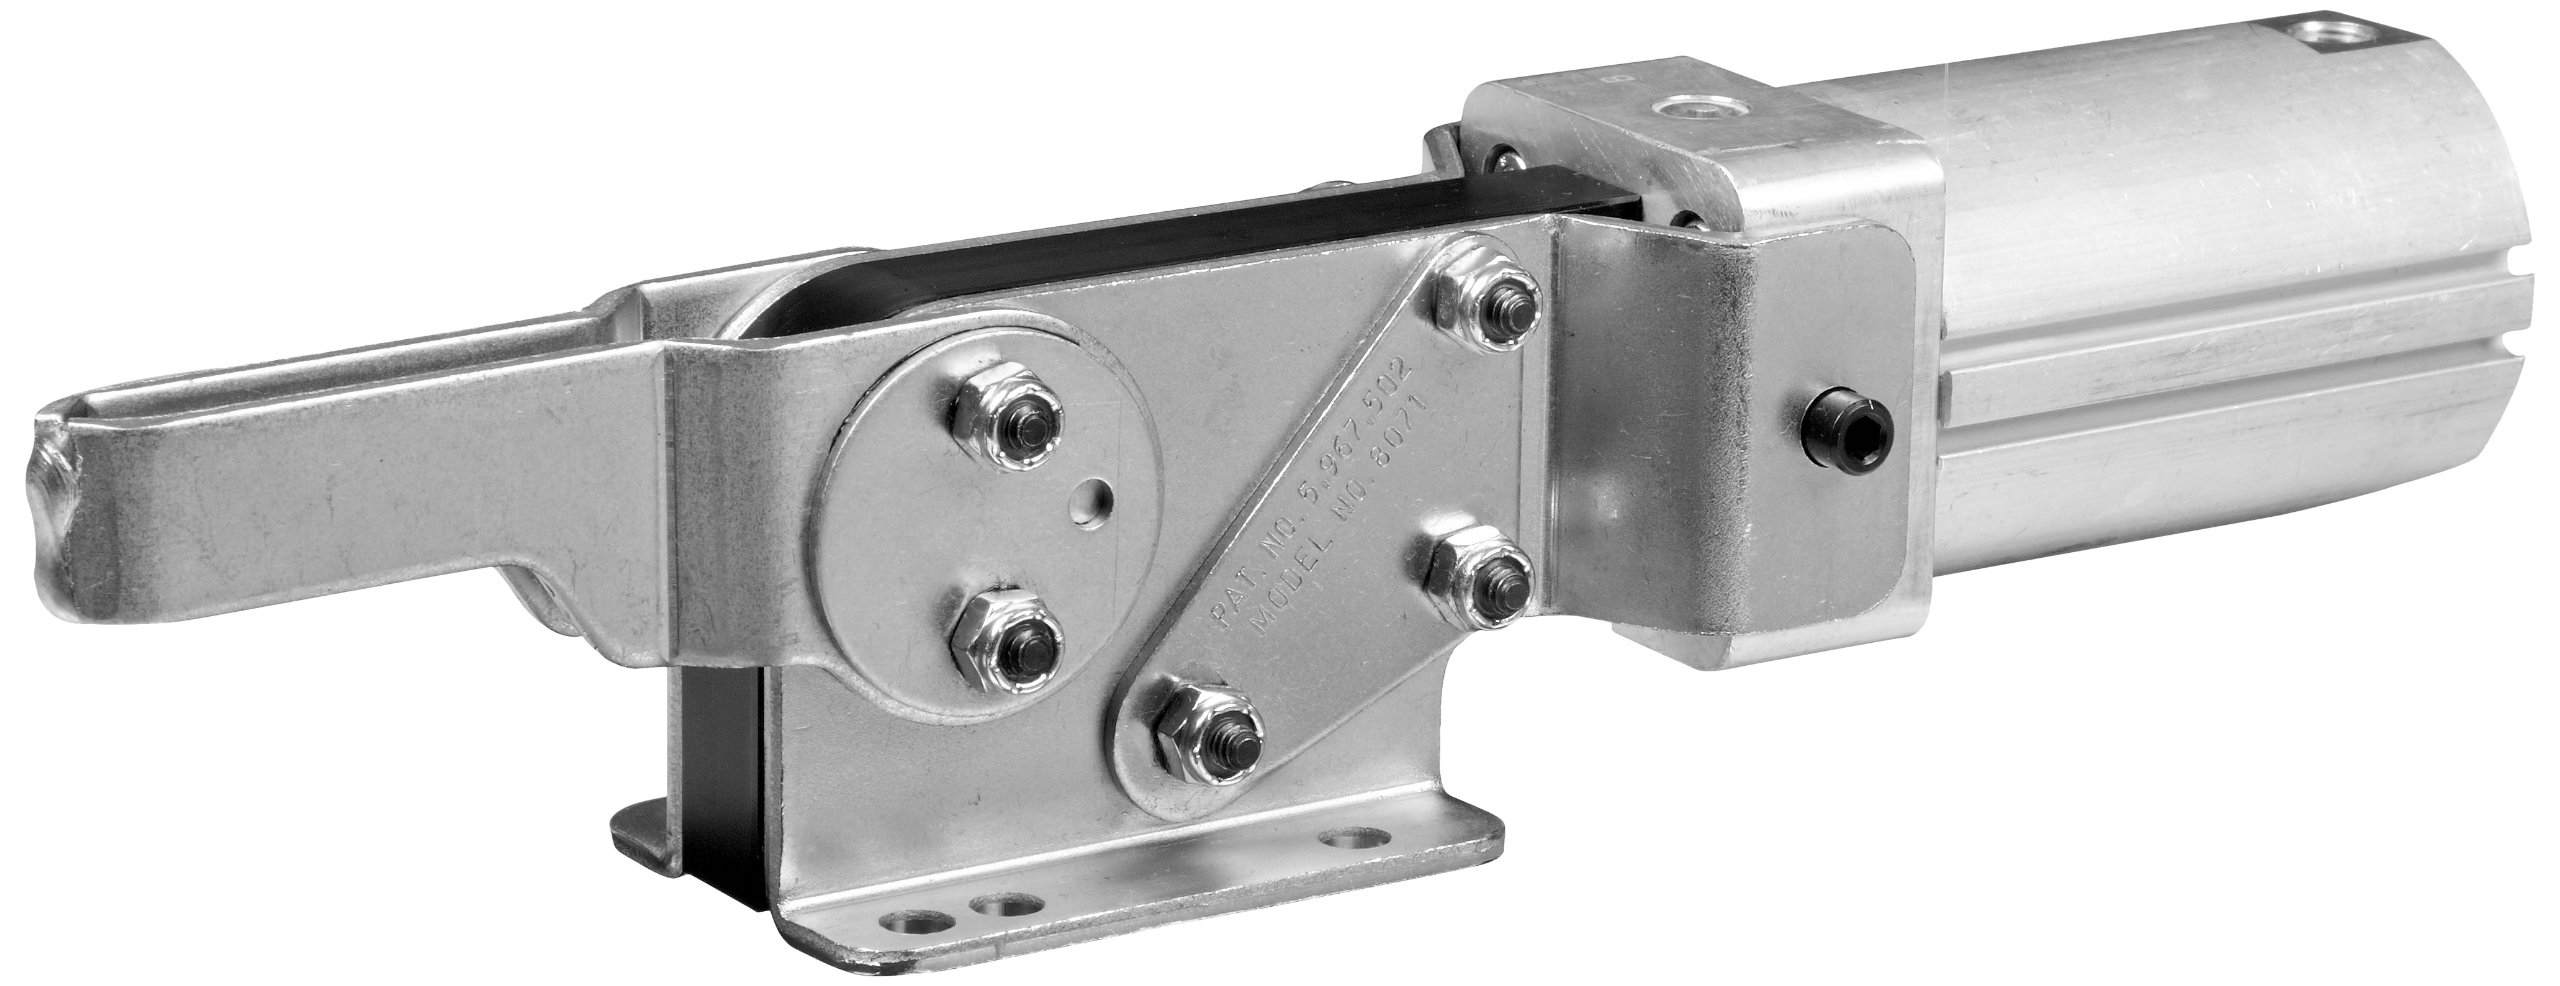 DE-STA-CO 8071 Enclosed Pneumatic Hold Down Action Clamp by De-Sta-Co